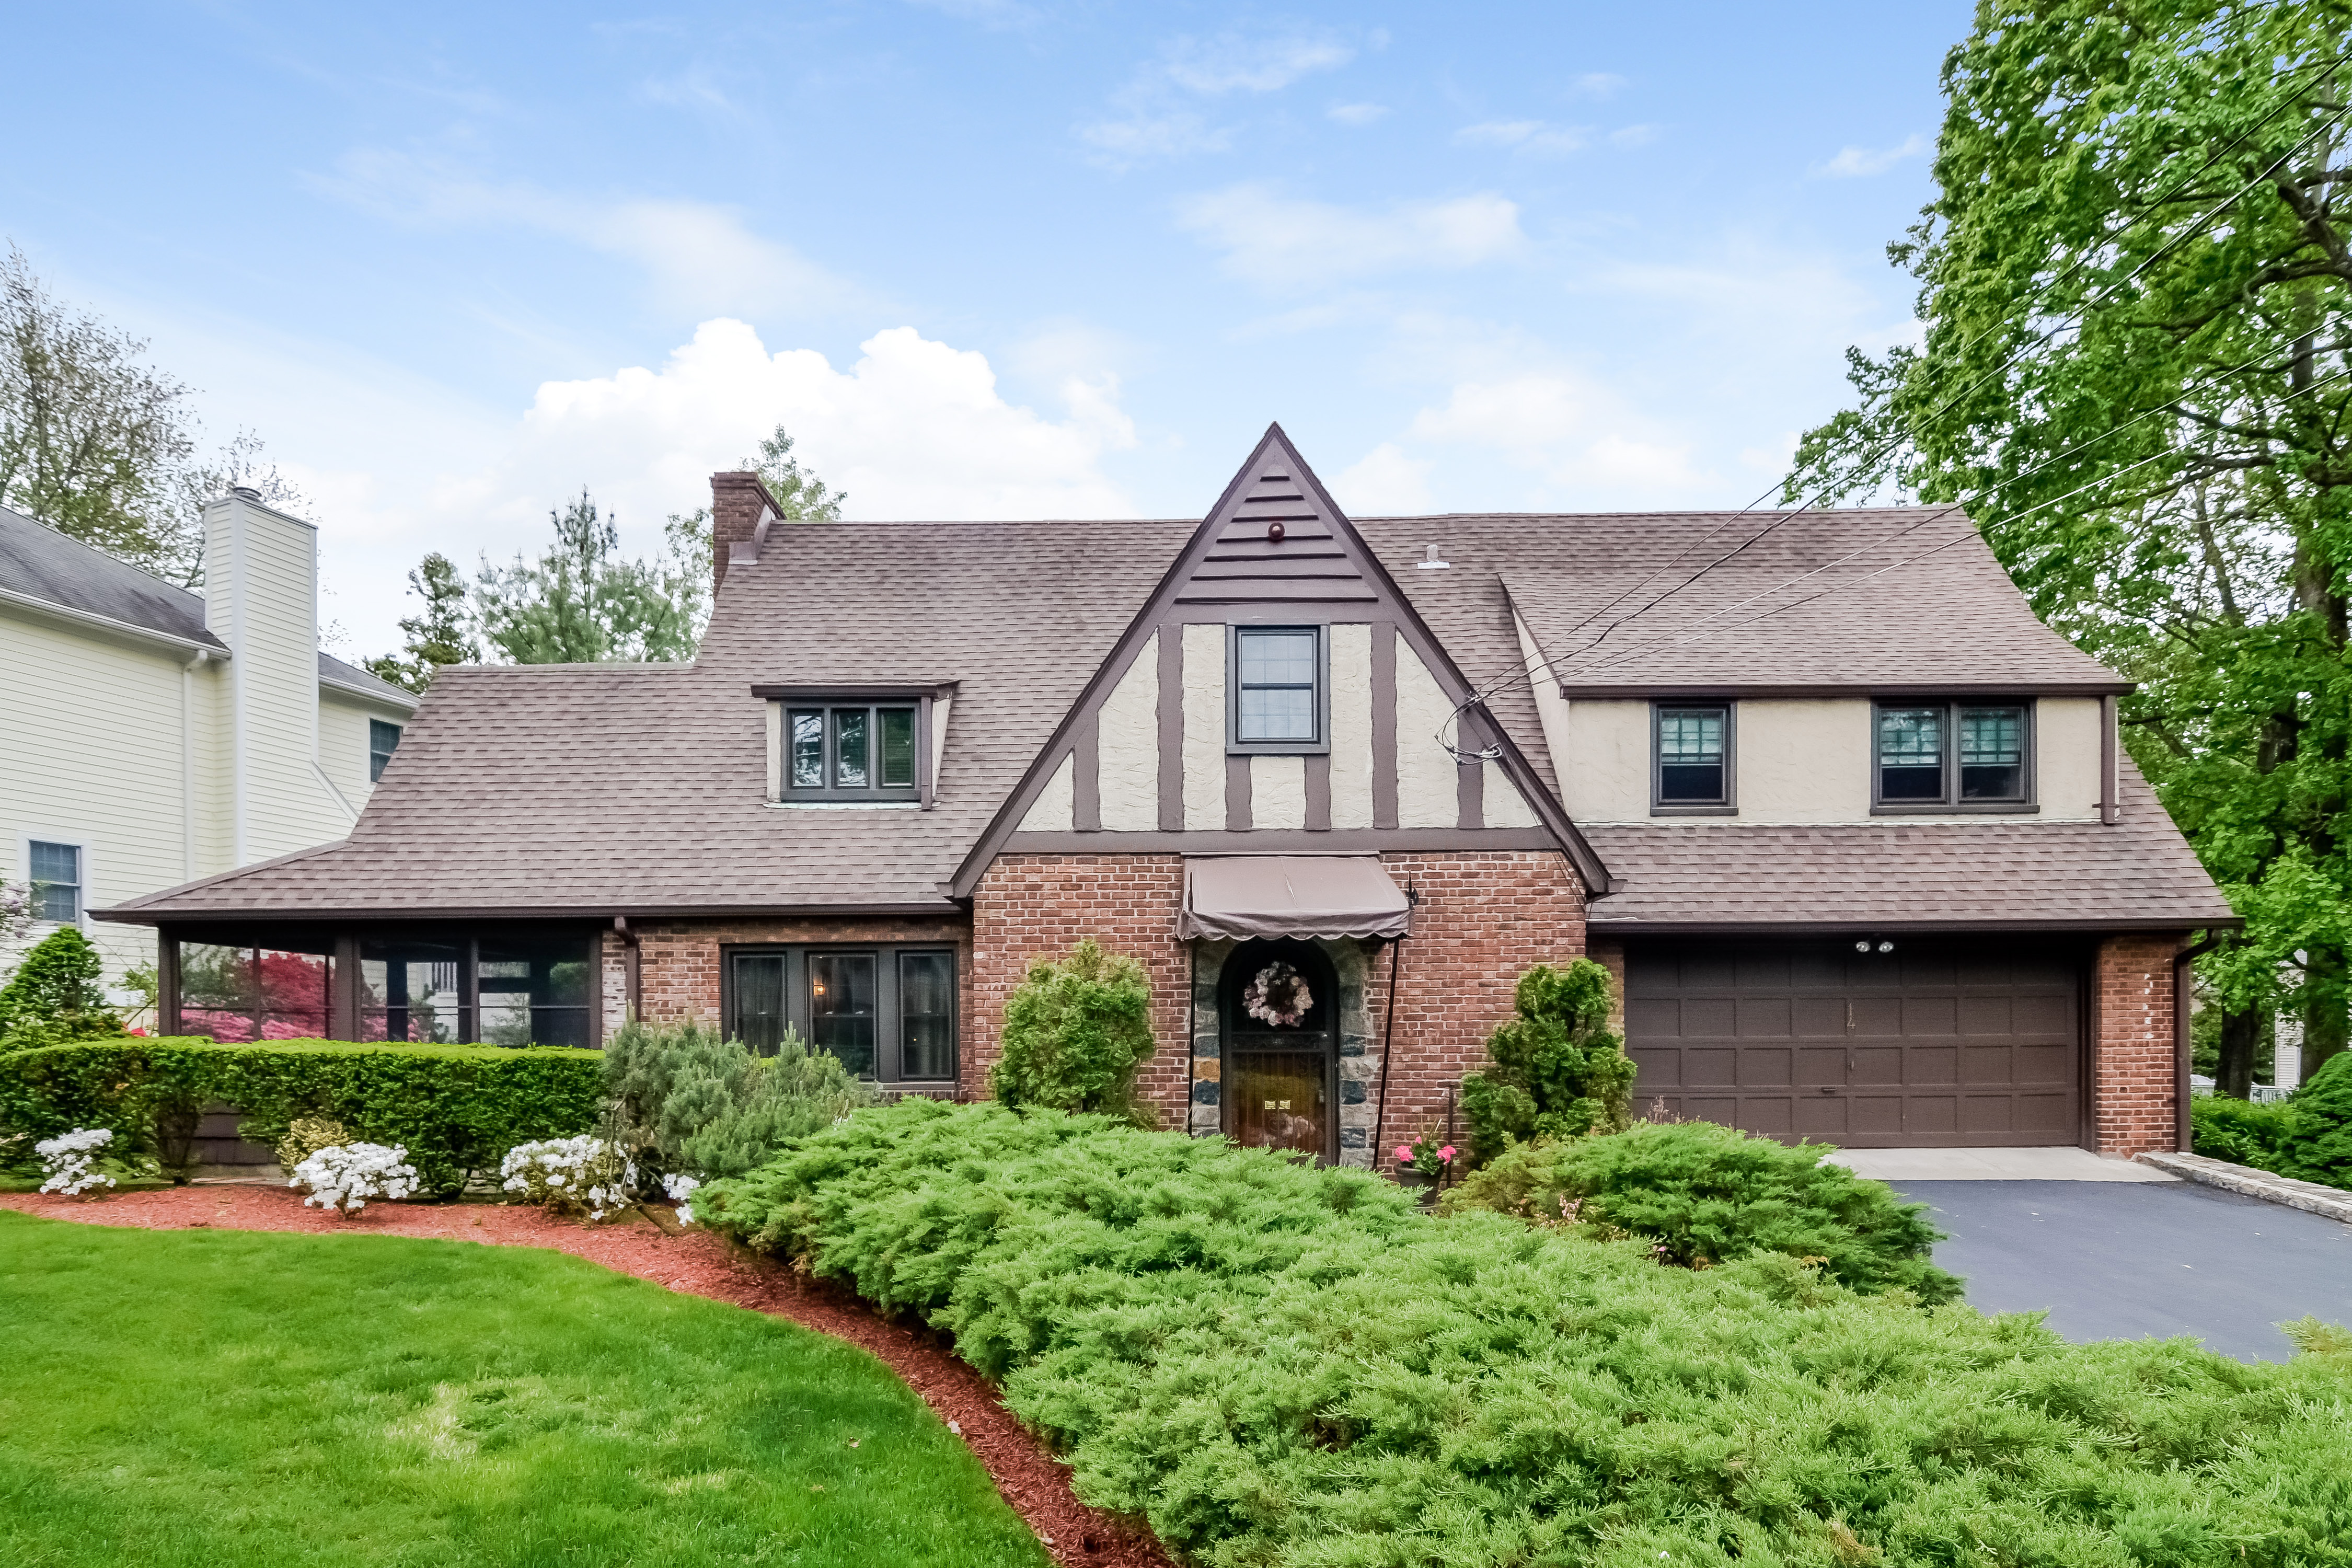 Single Family Home for Sale at Gracious Greenvale Tudor 14 Fernway Scarsdale, New York 10583 United States